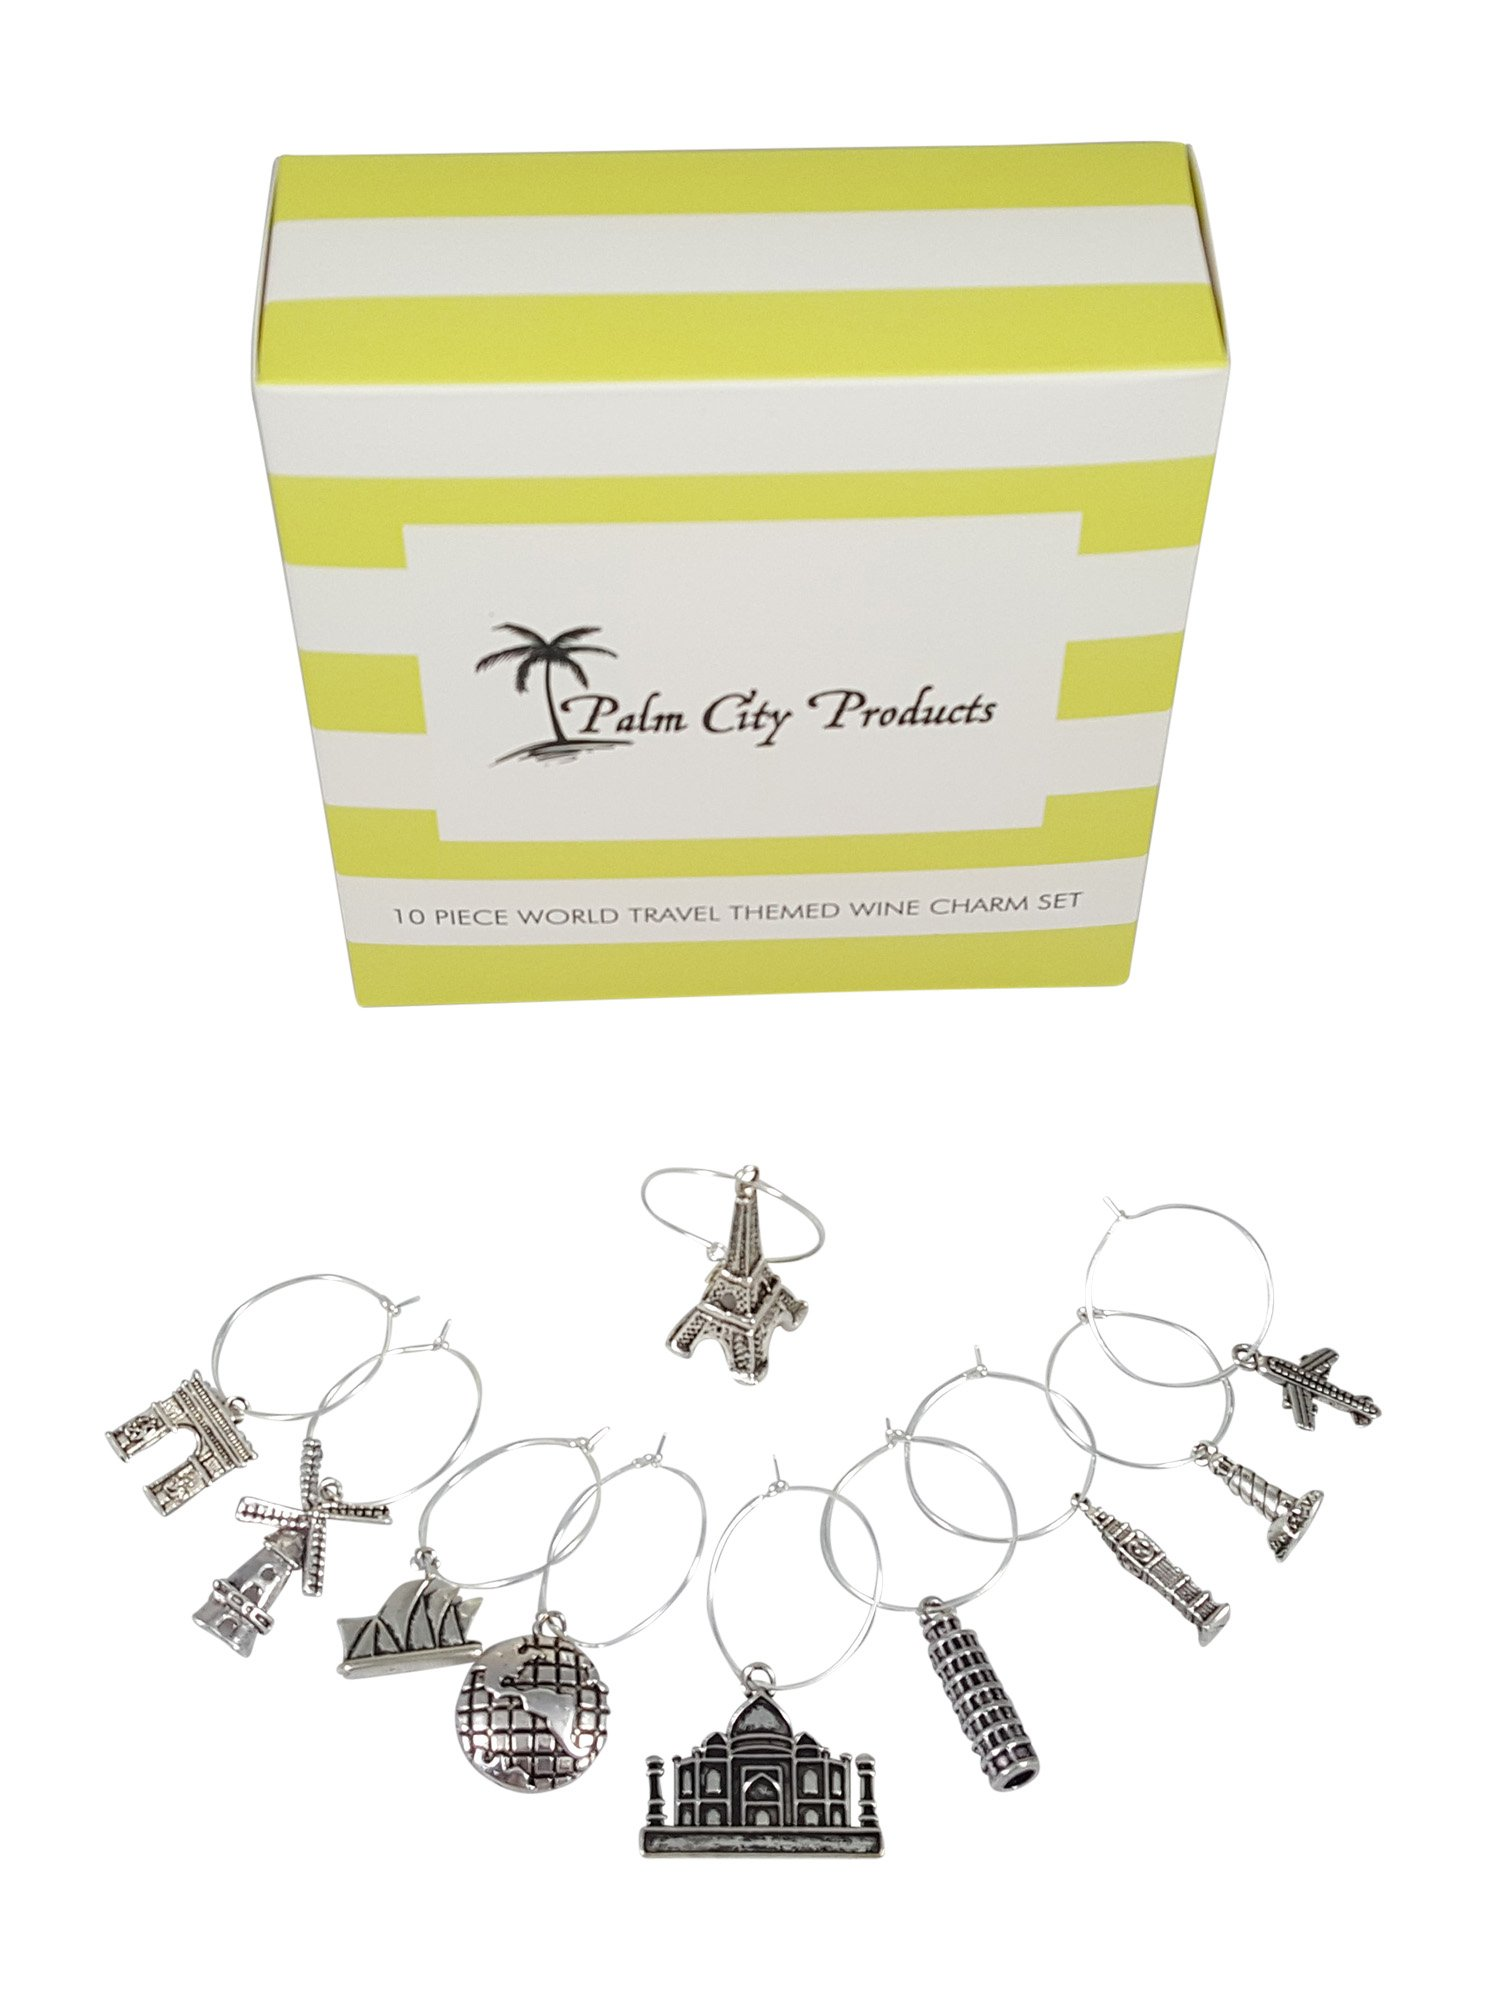 10 Piece World Travel Themed Wine Charm Set by Palm City Products